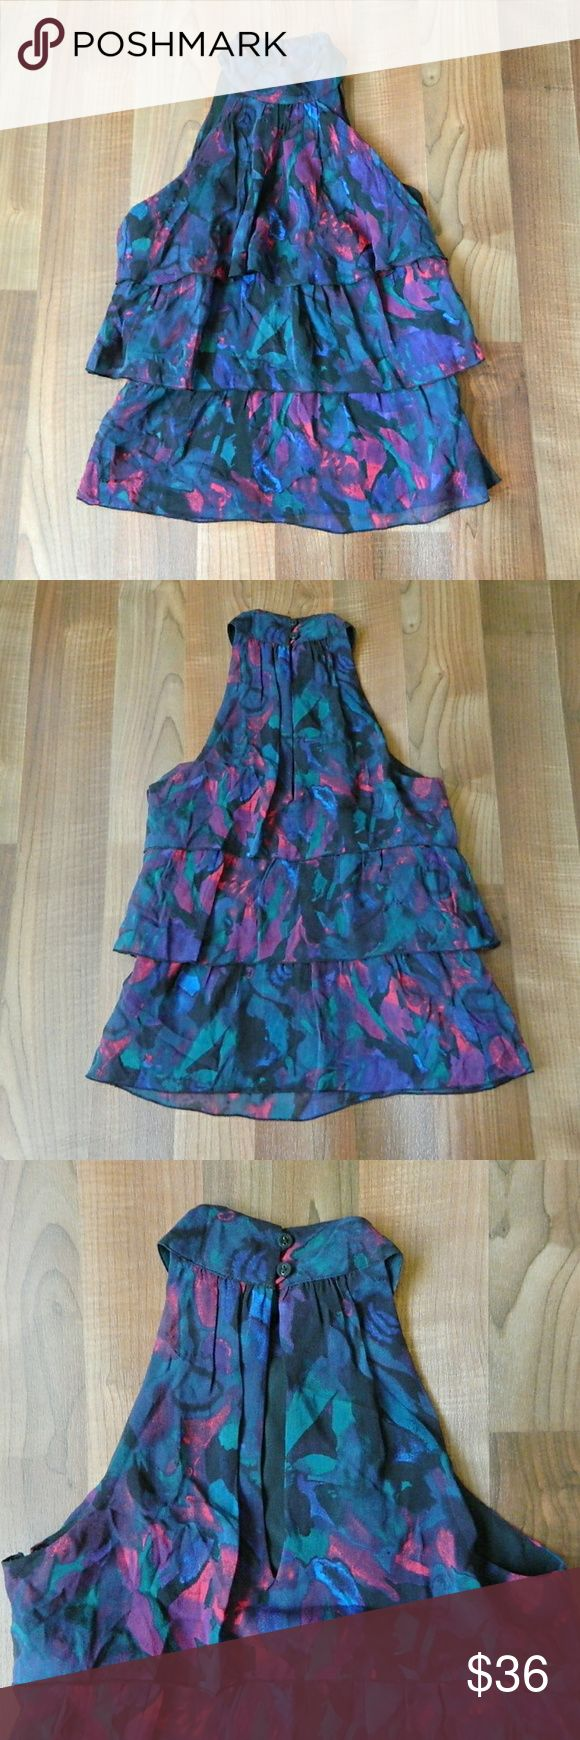 Armani Exchange Ruffle High Neck Sleeveless Top Silk blouse in great pre-owned condition by Armani Exchange. Size XS. Made of 100% silk. Fully lined interior. High neck with two button closure and side hidden zipper. Would look great with skinny jeans! No trades, Open to offers. Armani Exchange Tops Blouses